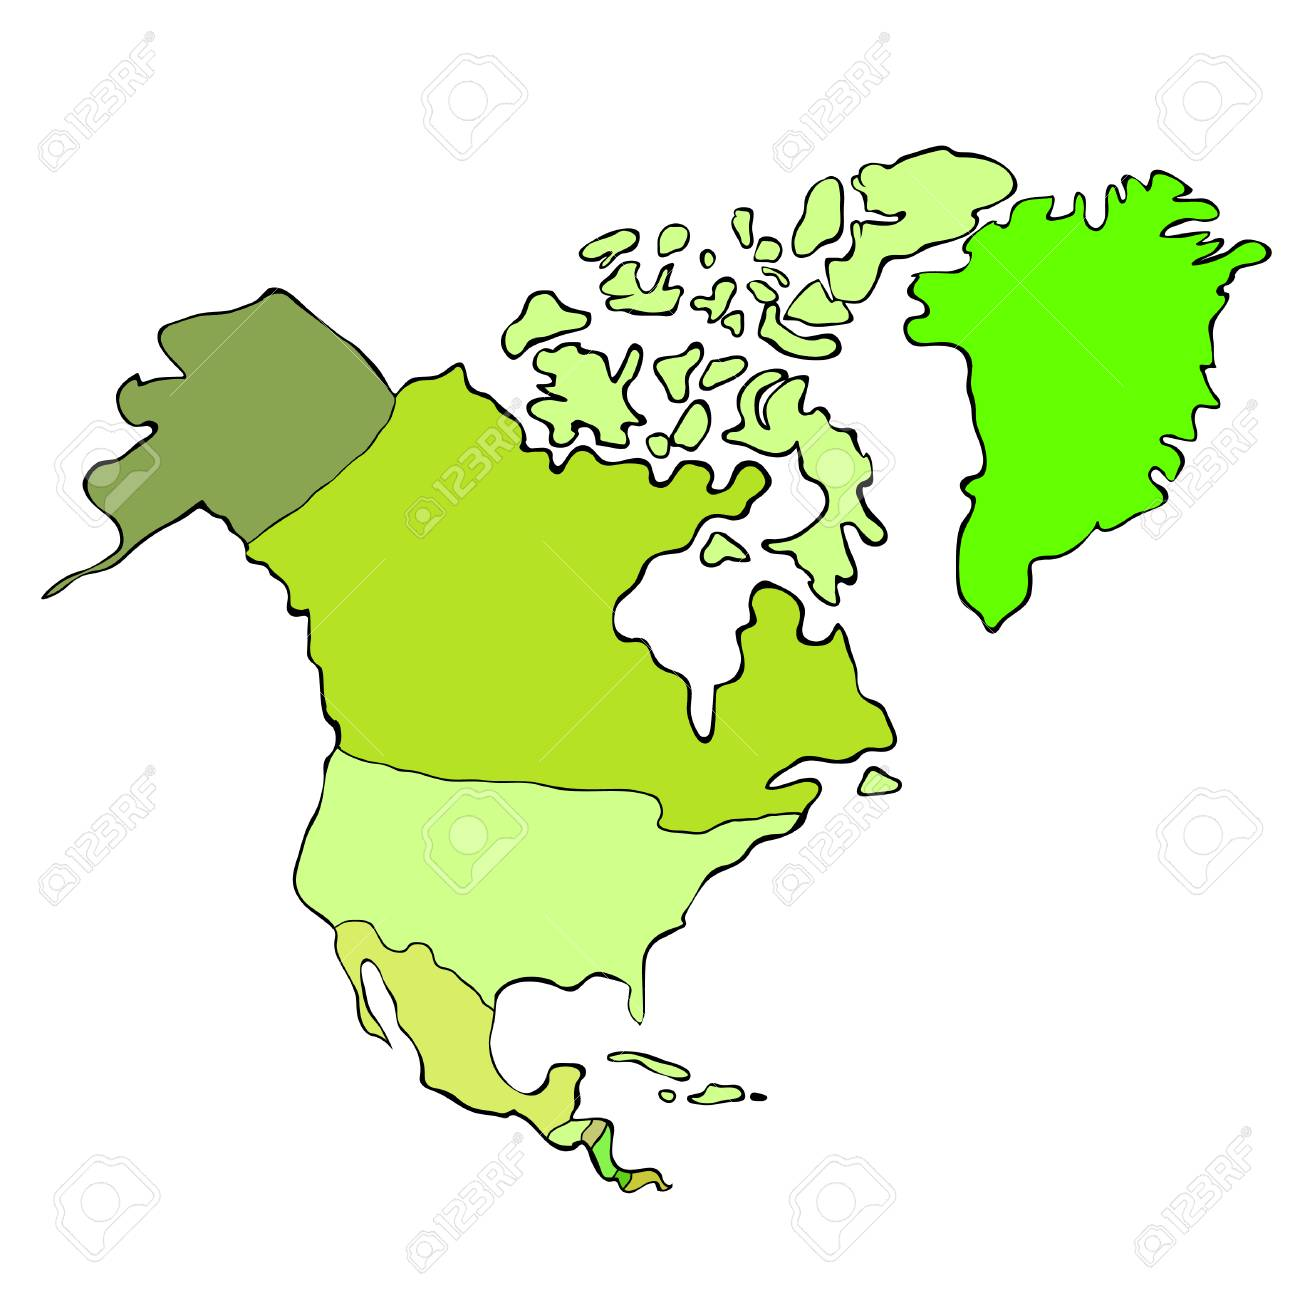 map of the world continent north america vector illustration royalty rh 123rf com north america vector map with states and provinces north america vector map with states and provinces